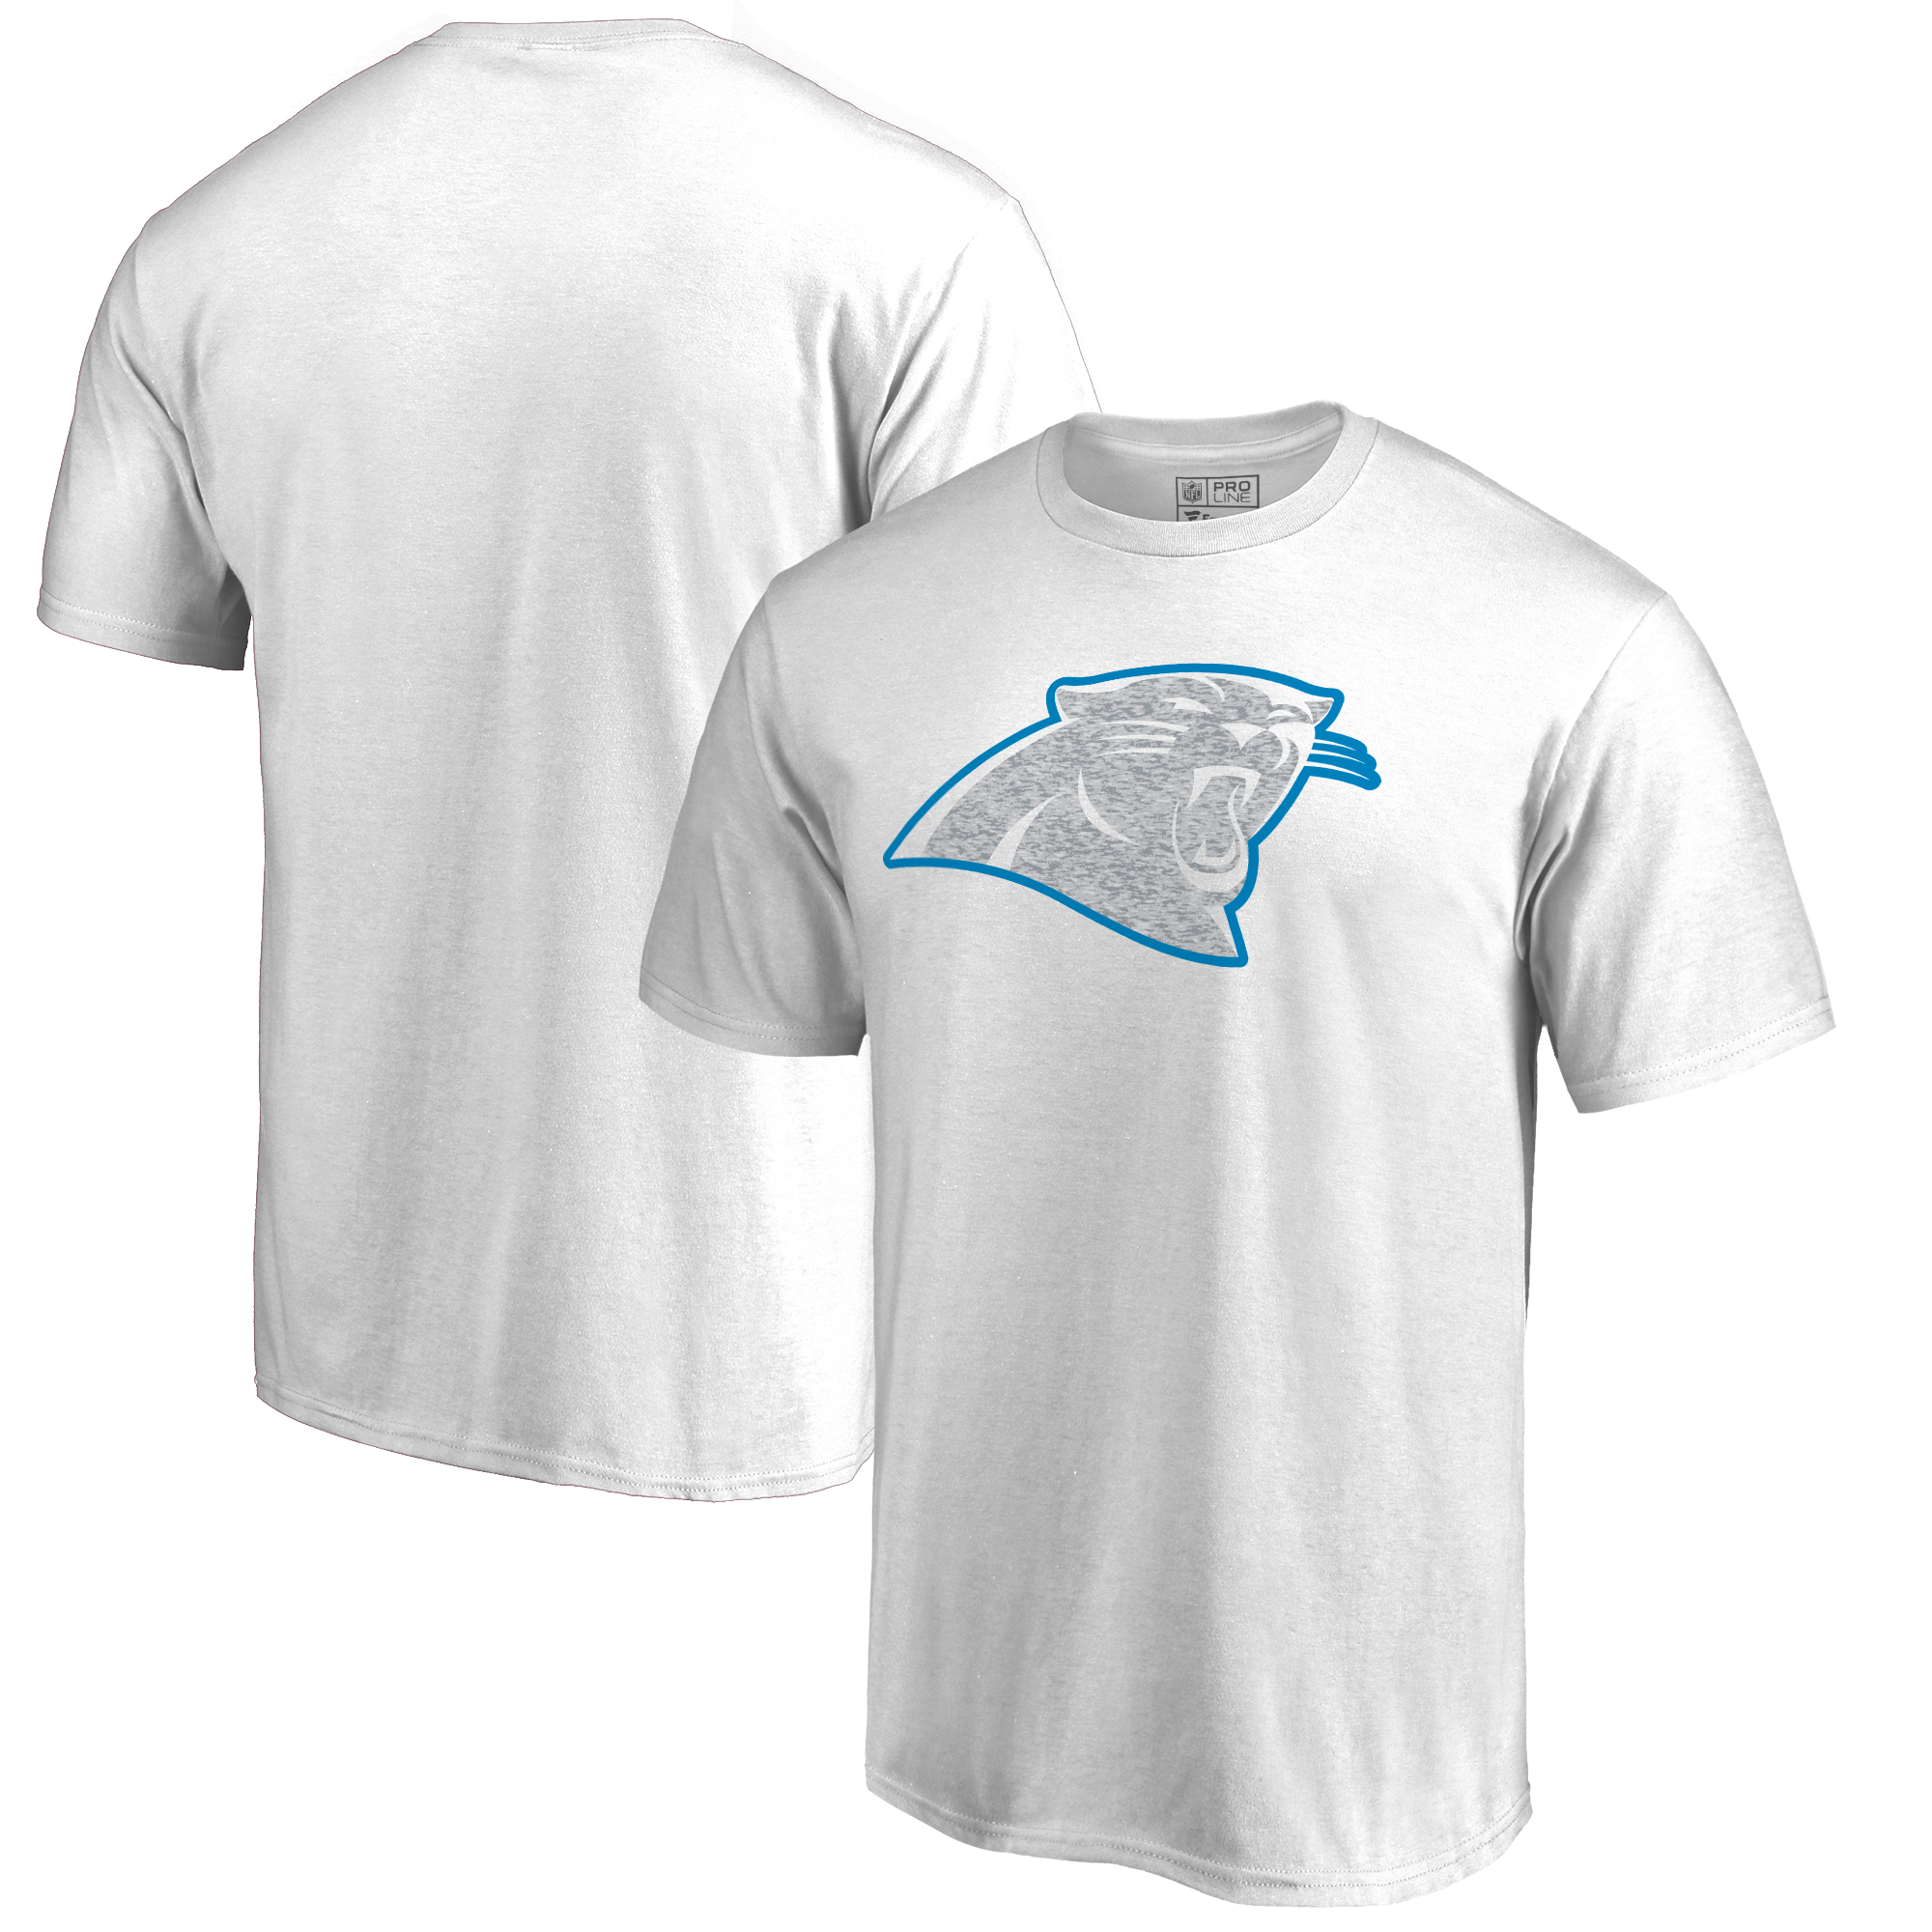 Men's NFL Pro Line by Fanatics Branded White Carolina Panthers White Out T-Shirt